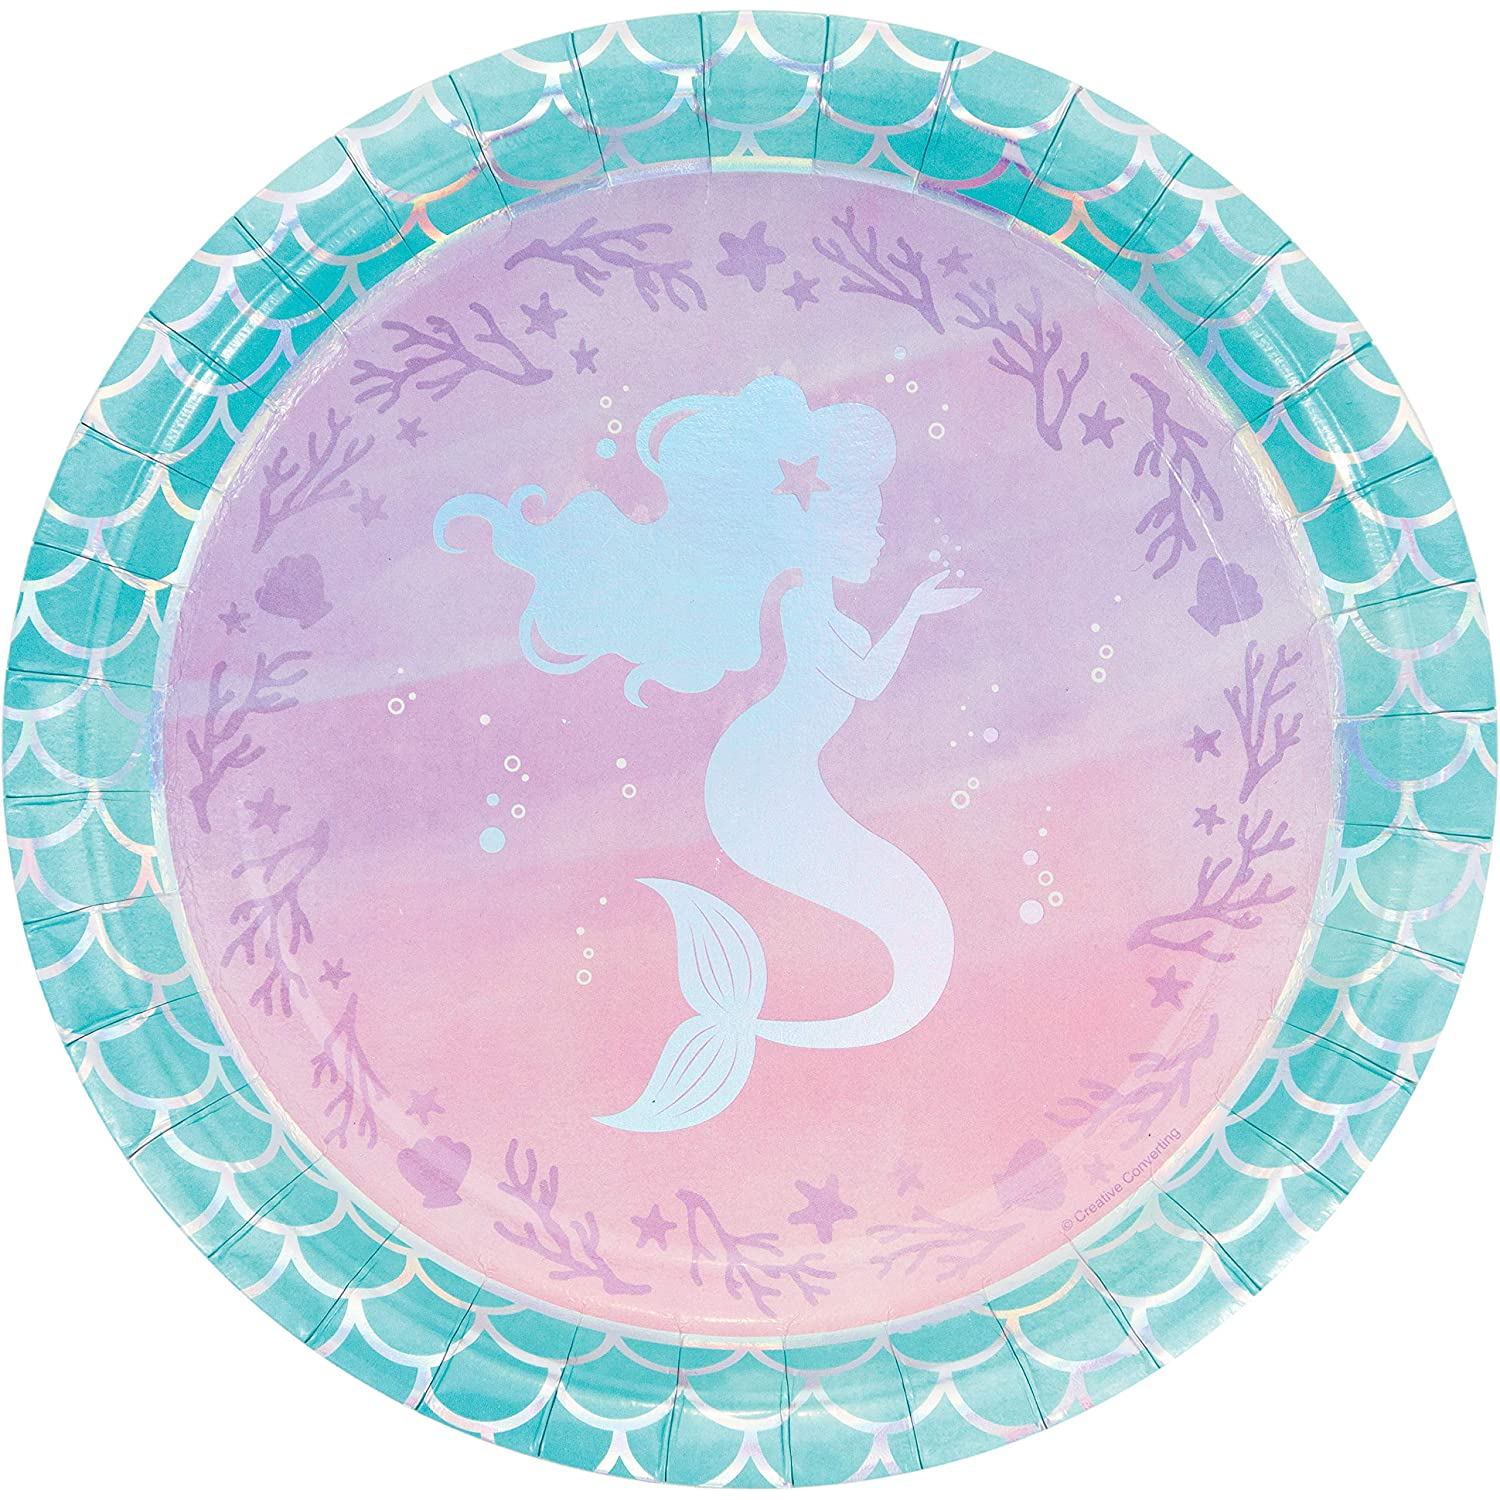 Amazon.com: Iridescent Mermaid Party Paper Plates, 24 ct: Toys \u0026 Games